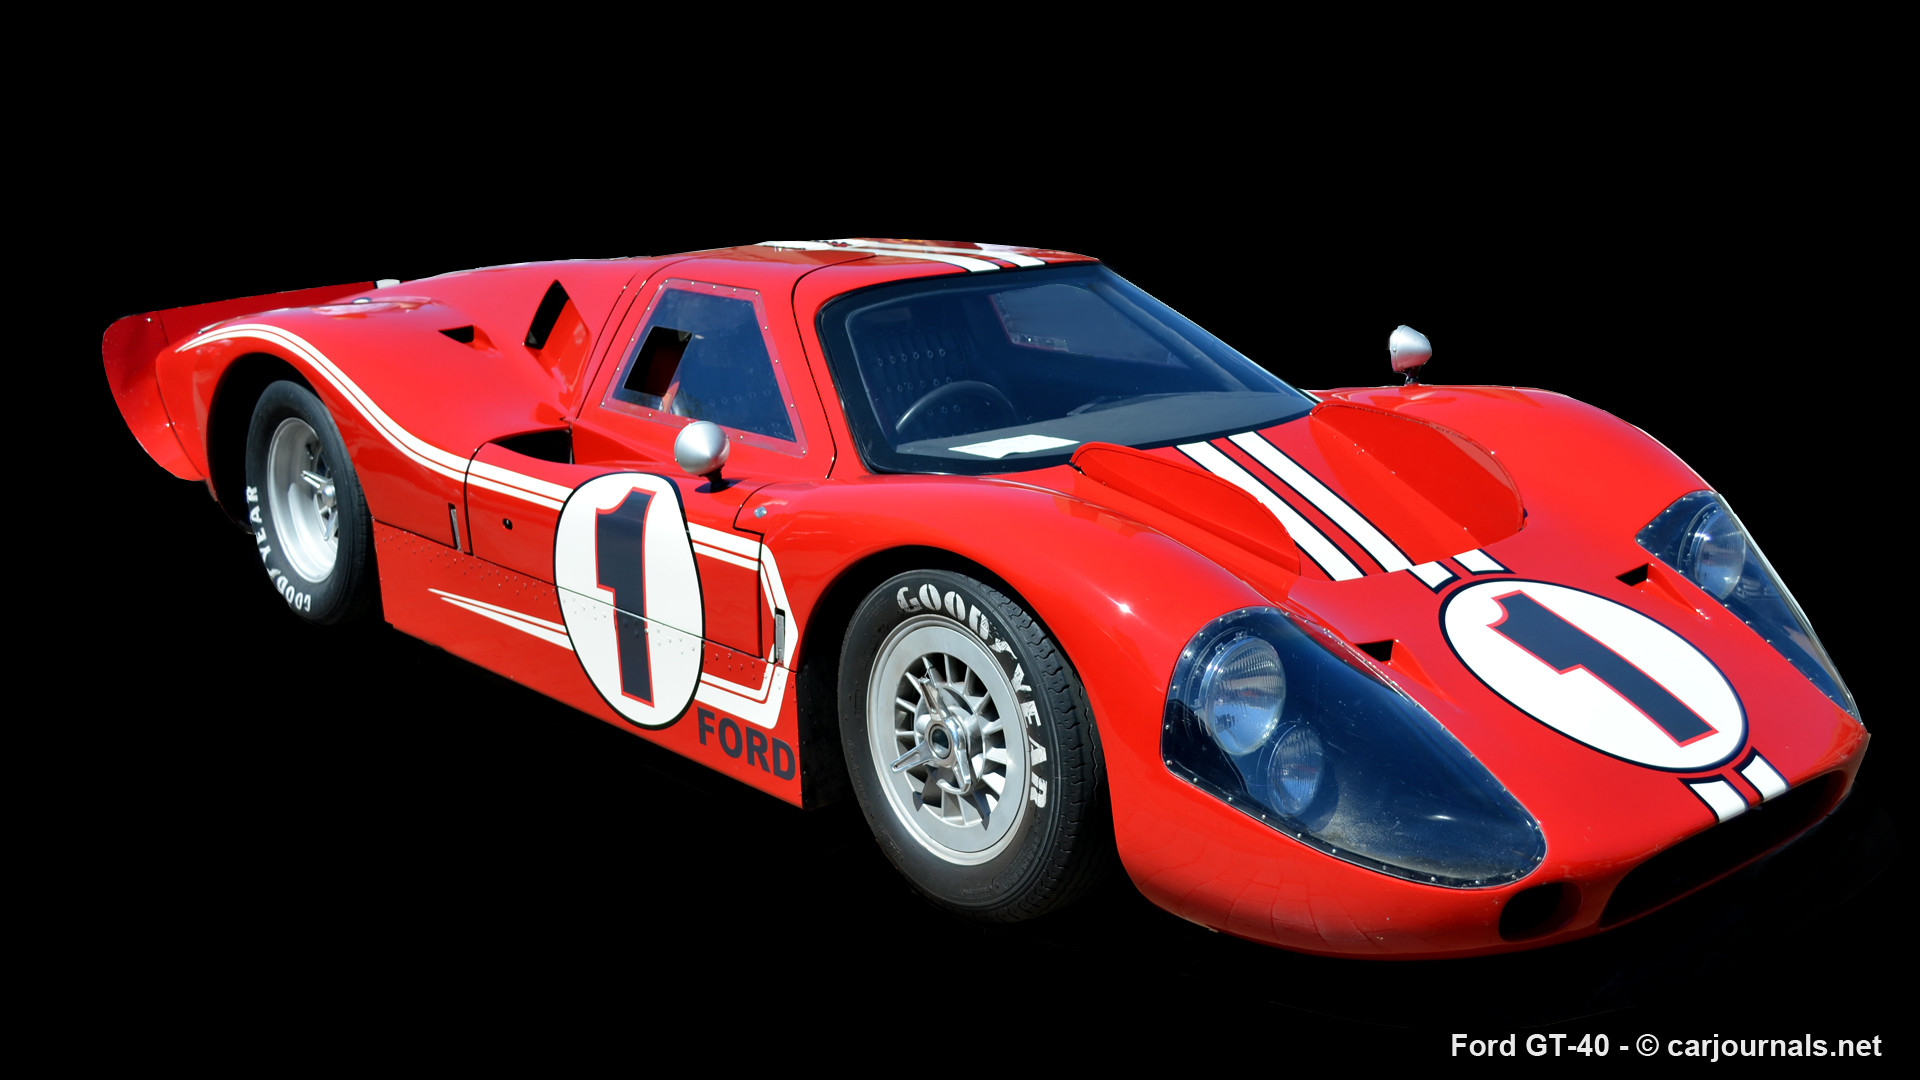 Res: 1920x1080, HD Car Wallpapers – Ford GT40